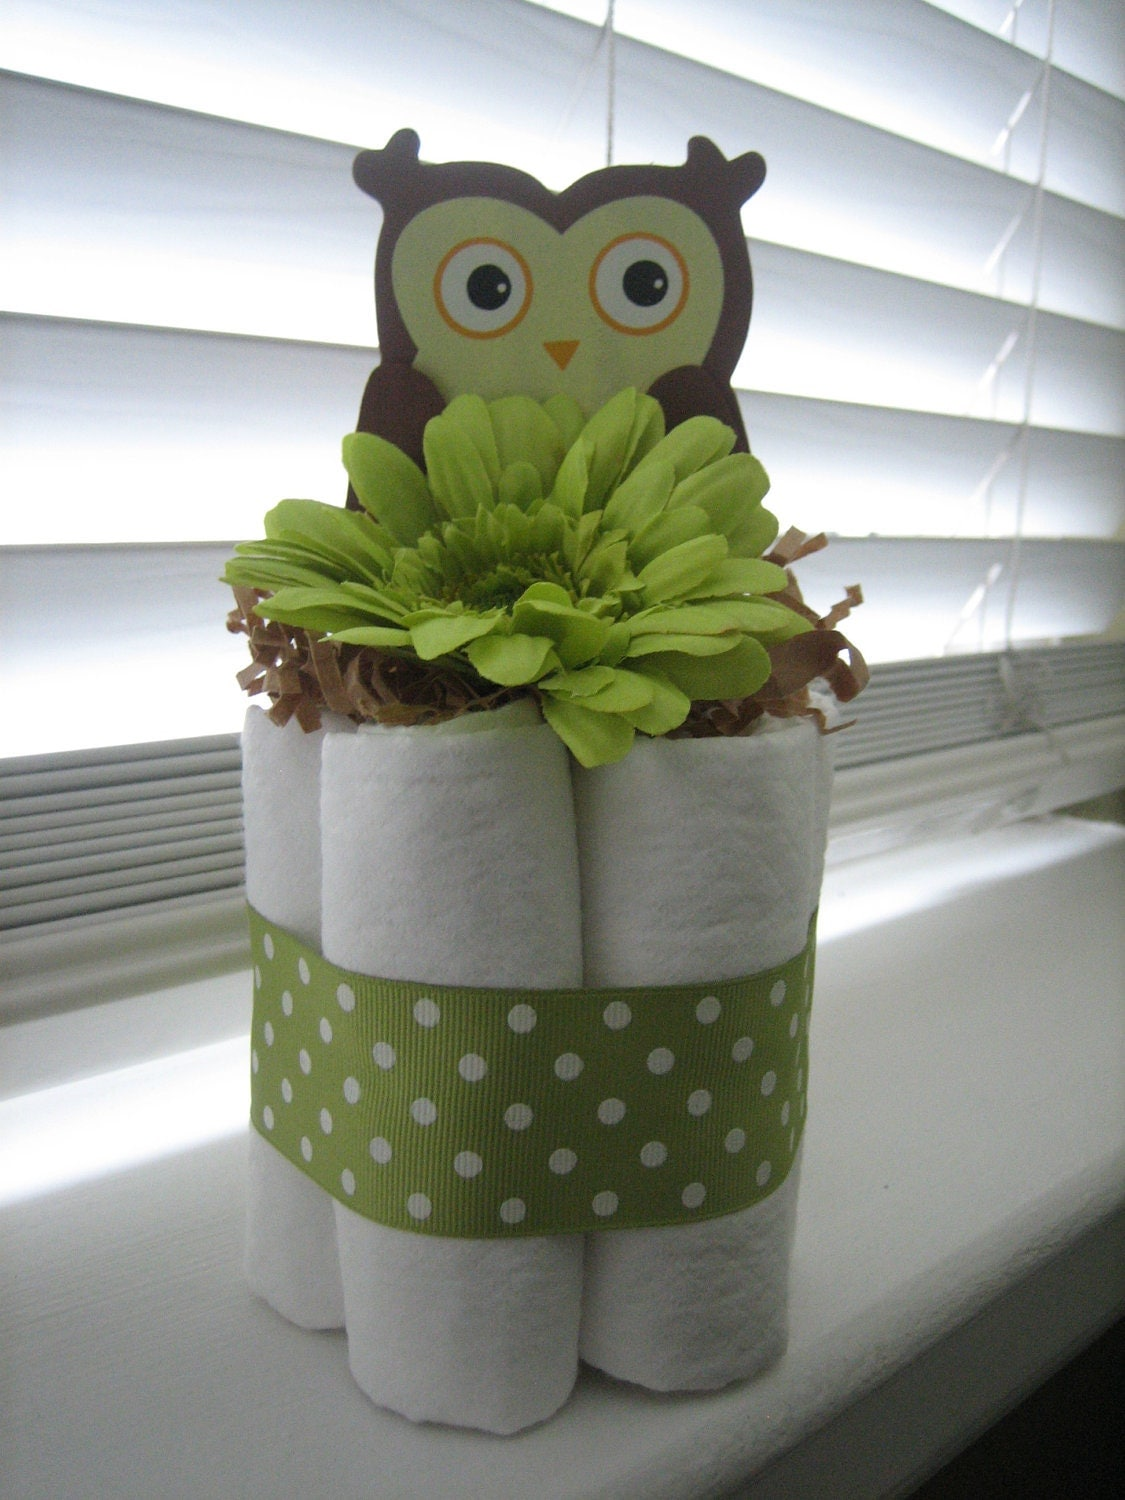 Owl mini diaper cakes for baby shower centerpiece or new